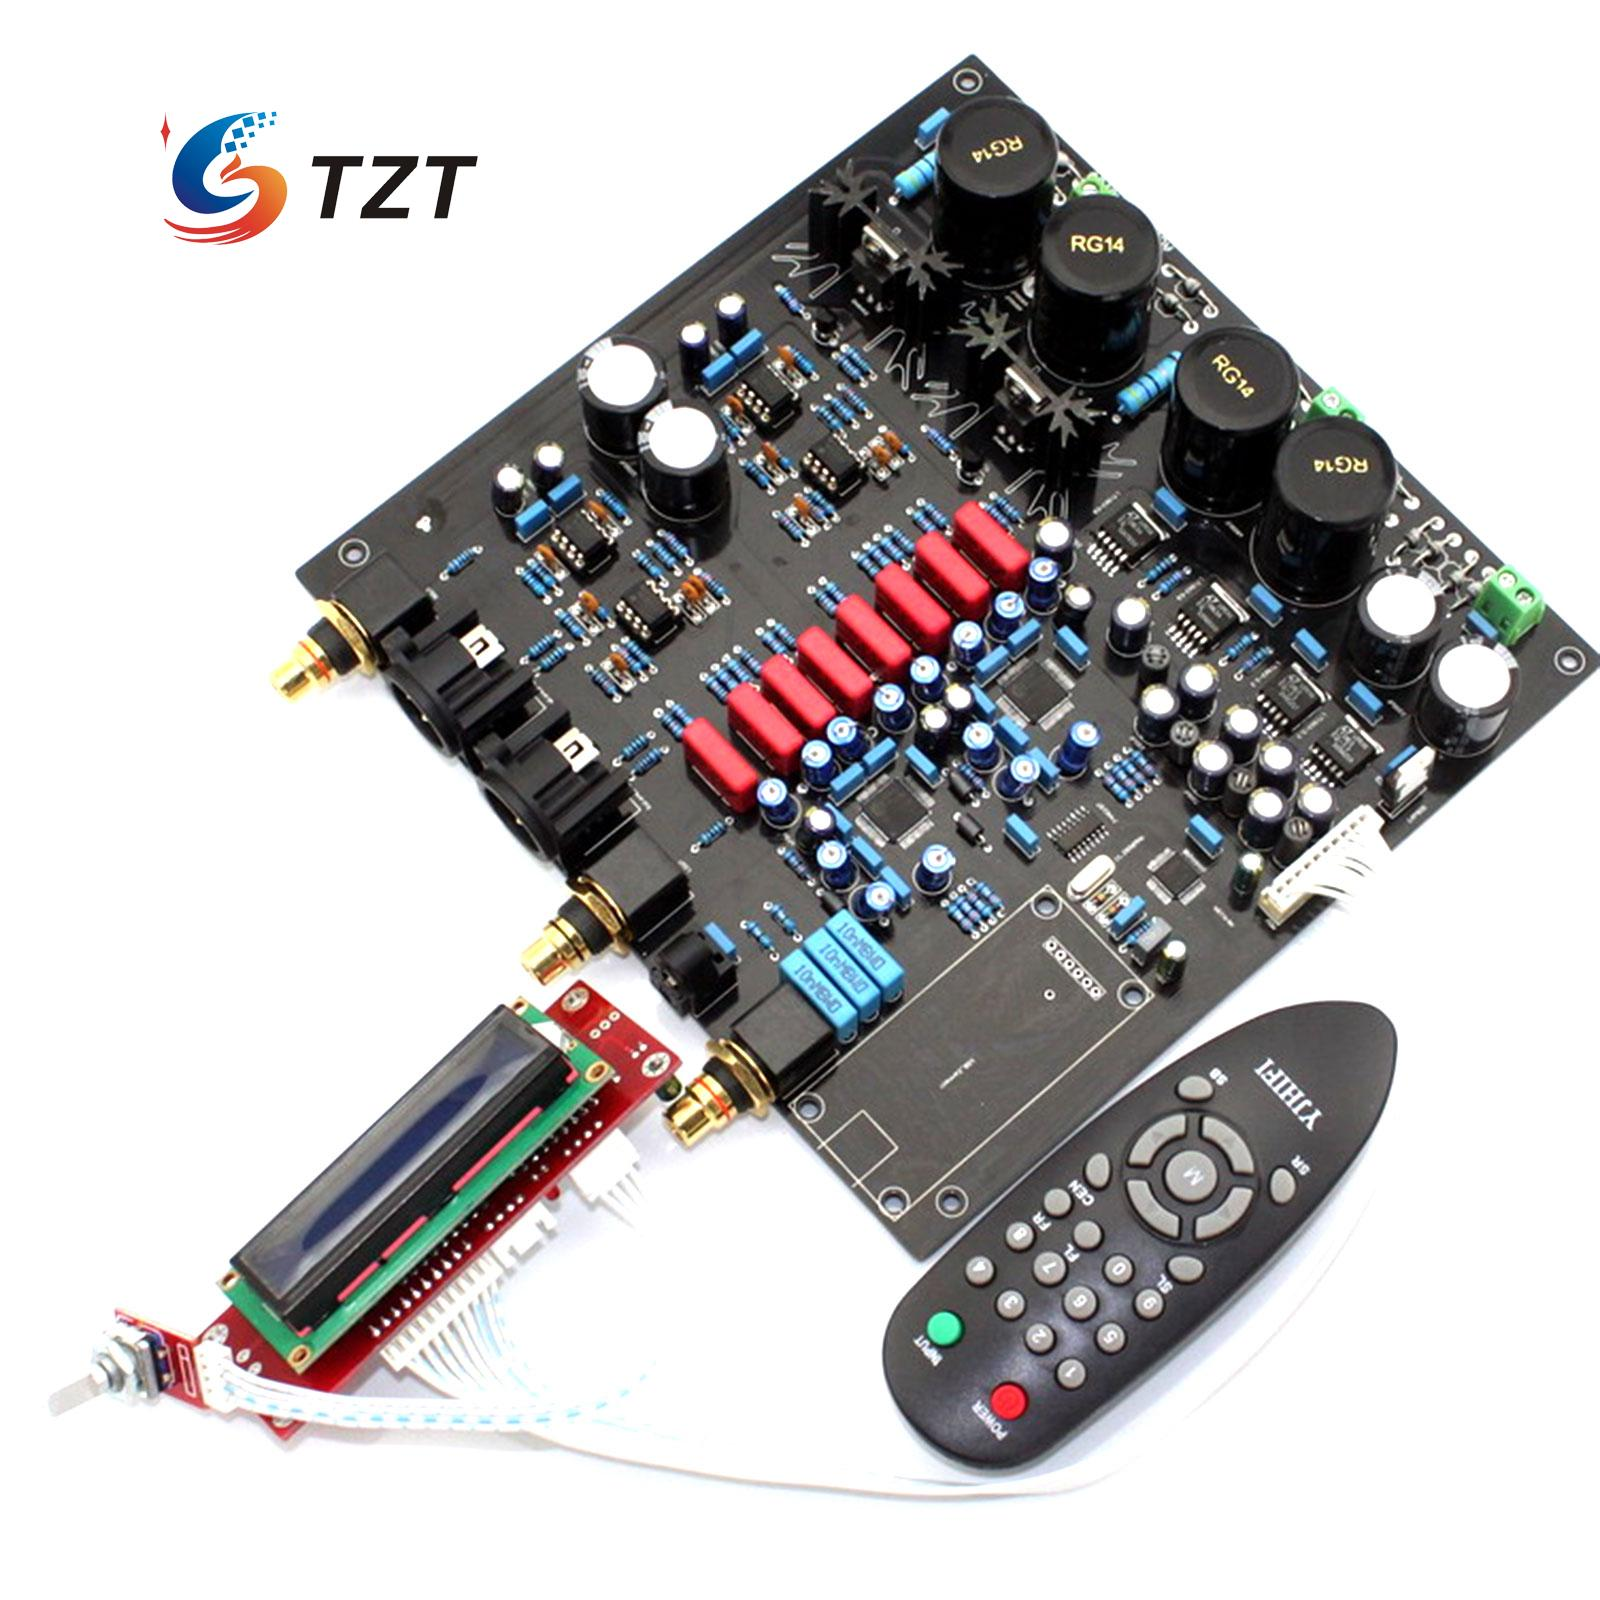 DAC Decoder Board for Audio Power Amplifier DIY with Remote Controller Support DOP DSD diy kits 70w ssb linear hf power amplifier for yaesu ft 817 kx3 amplifier